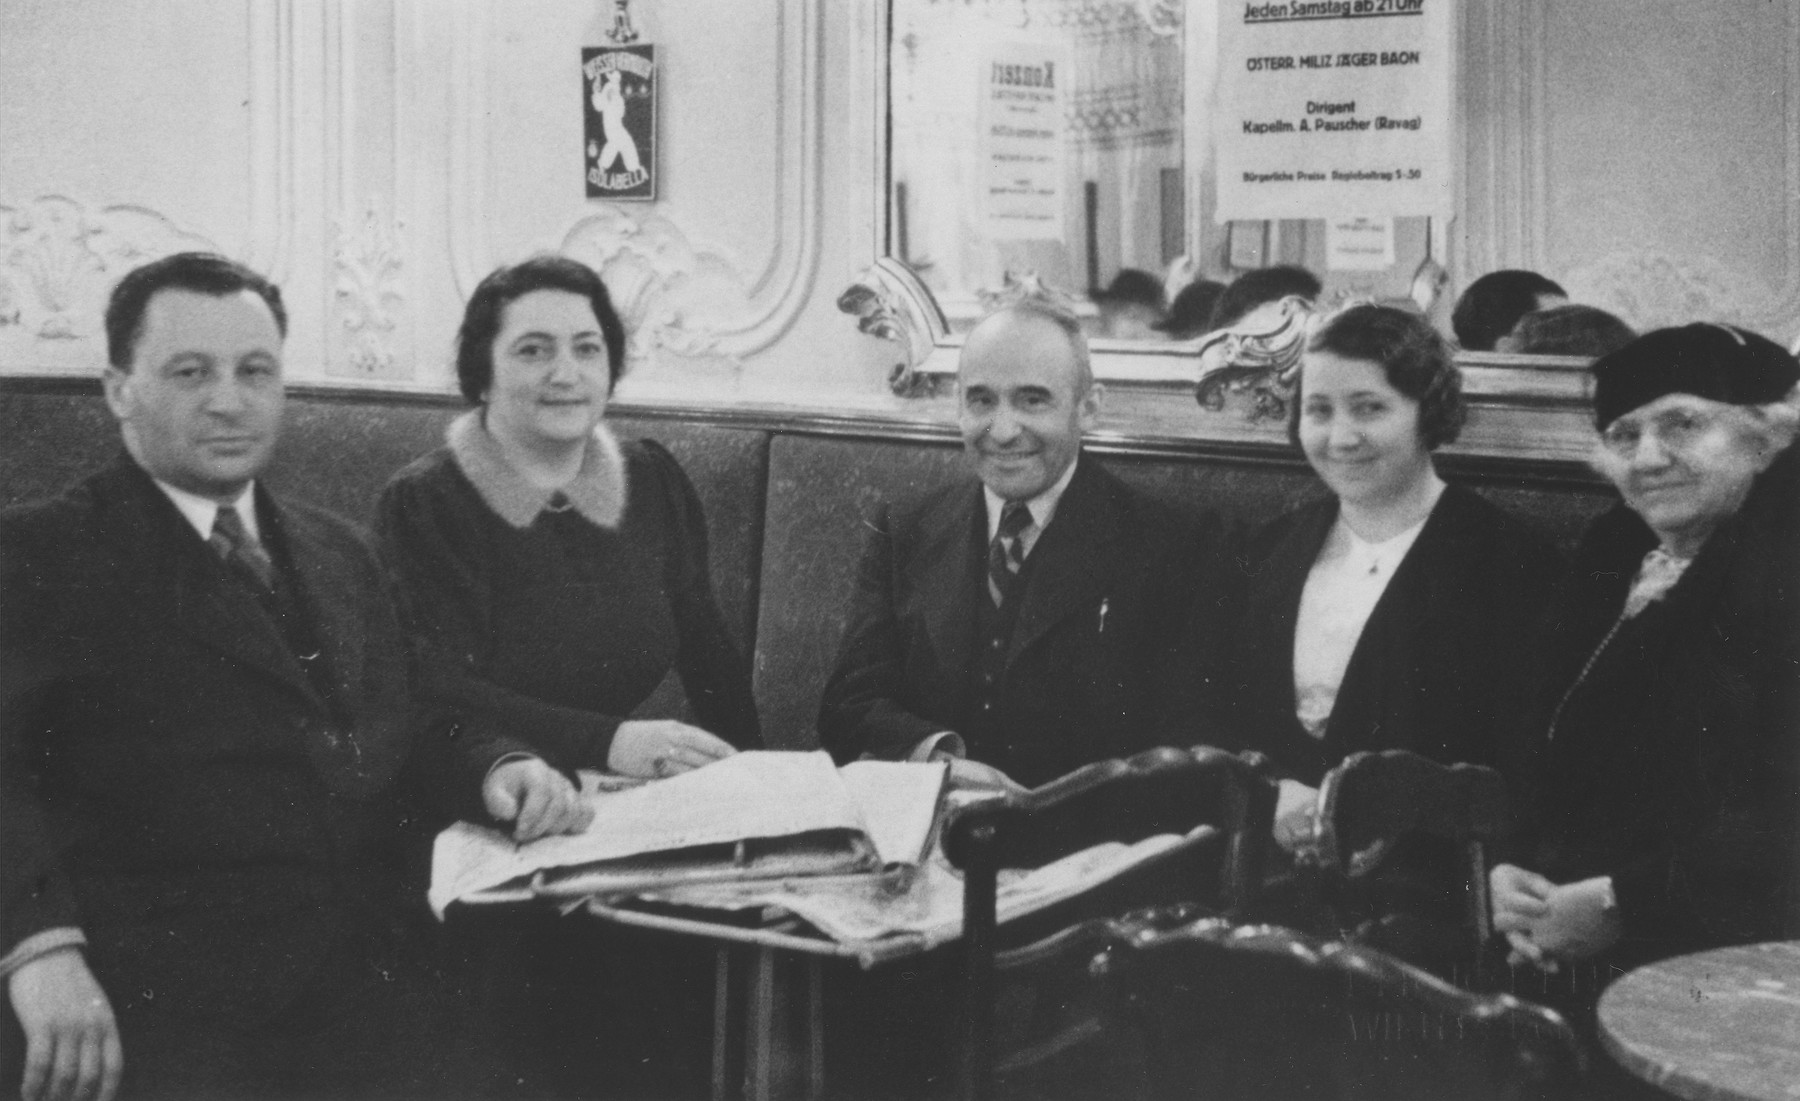 Greta and Arthur Mayer (second and third from the right) sit at a table with friends in their coffee house in Vienna.